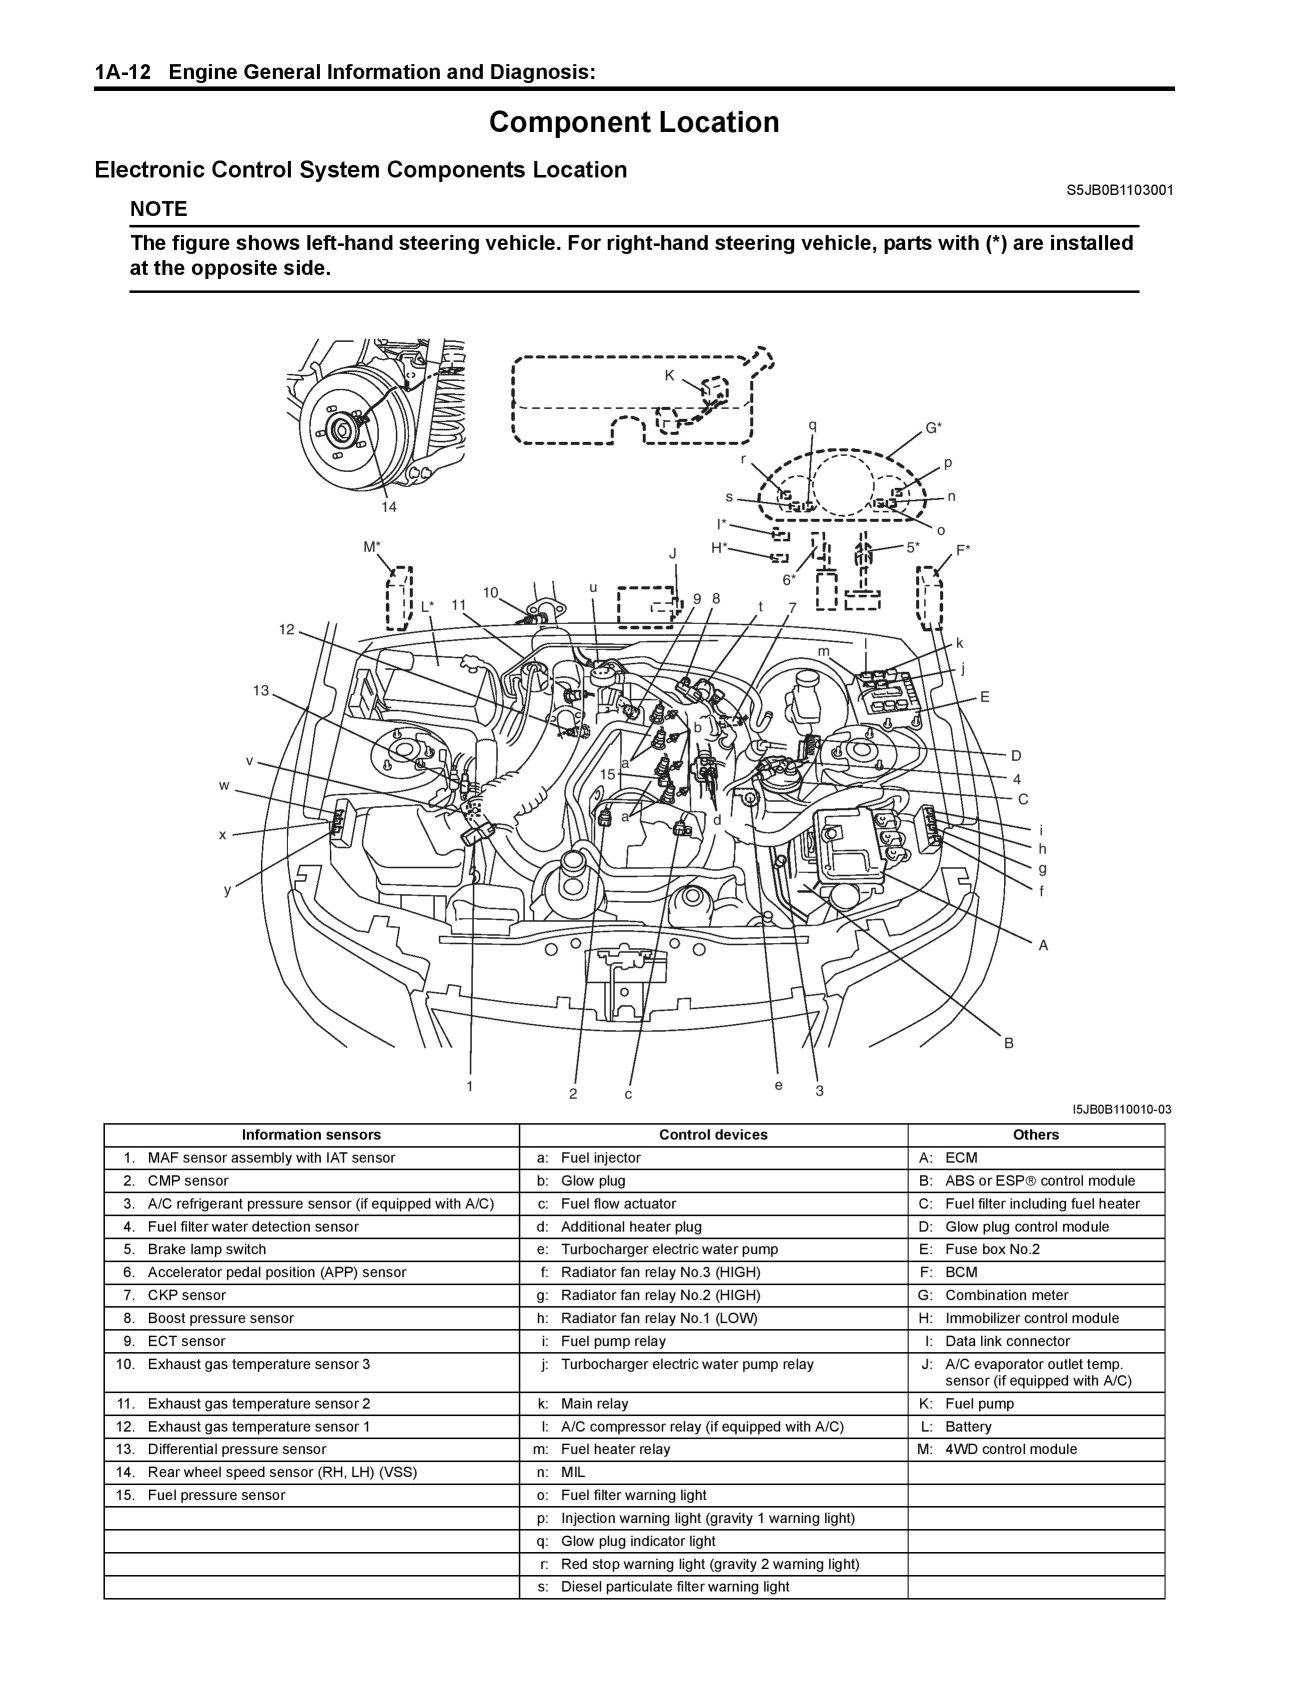 2007 Suzuki Grand Vitara Fuel Filter Location